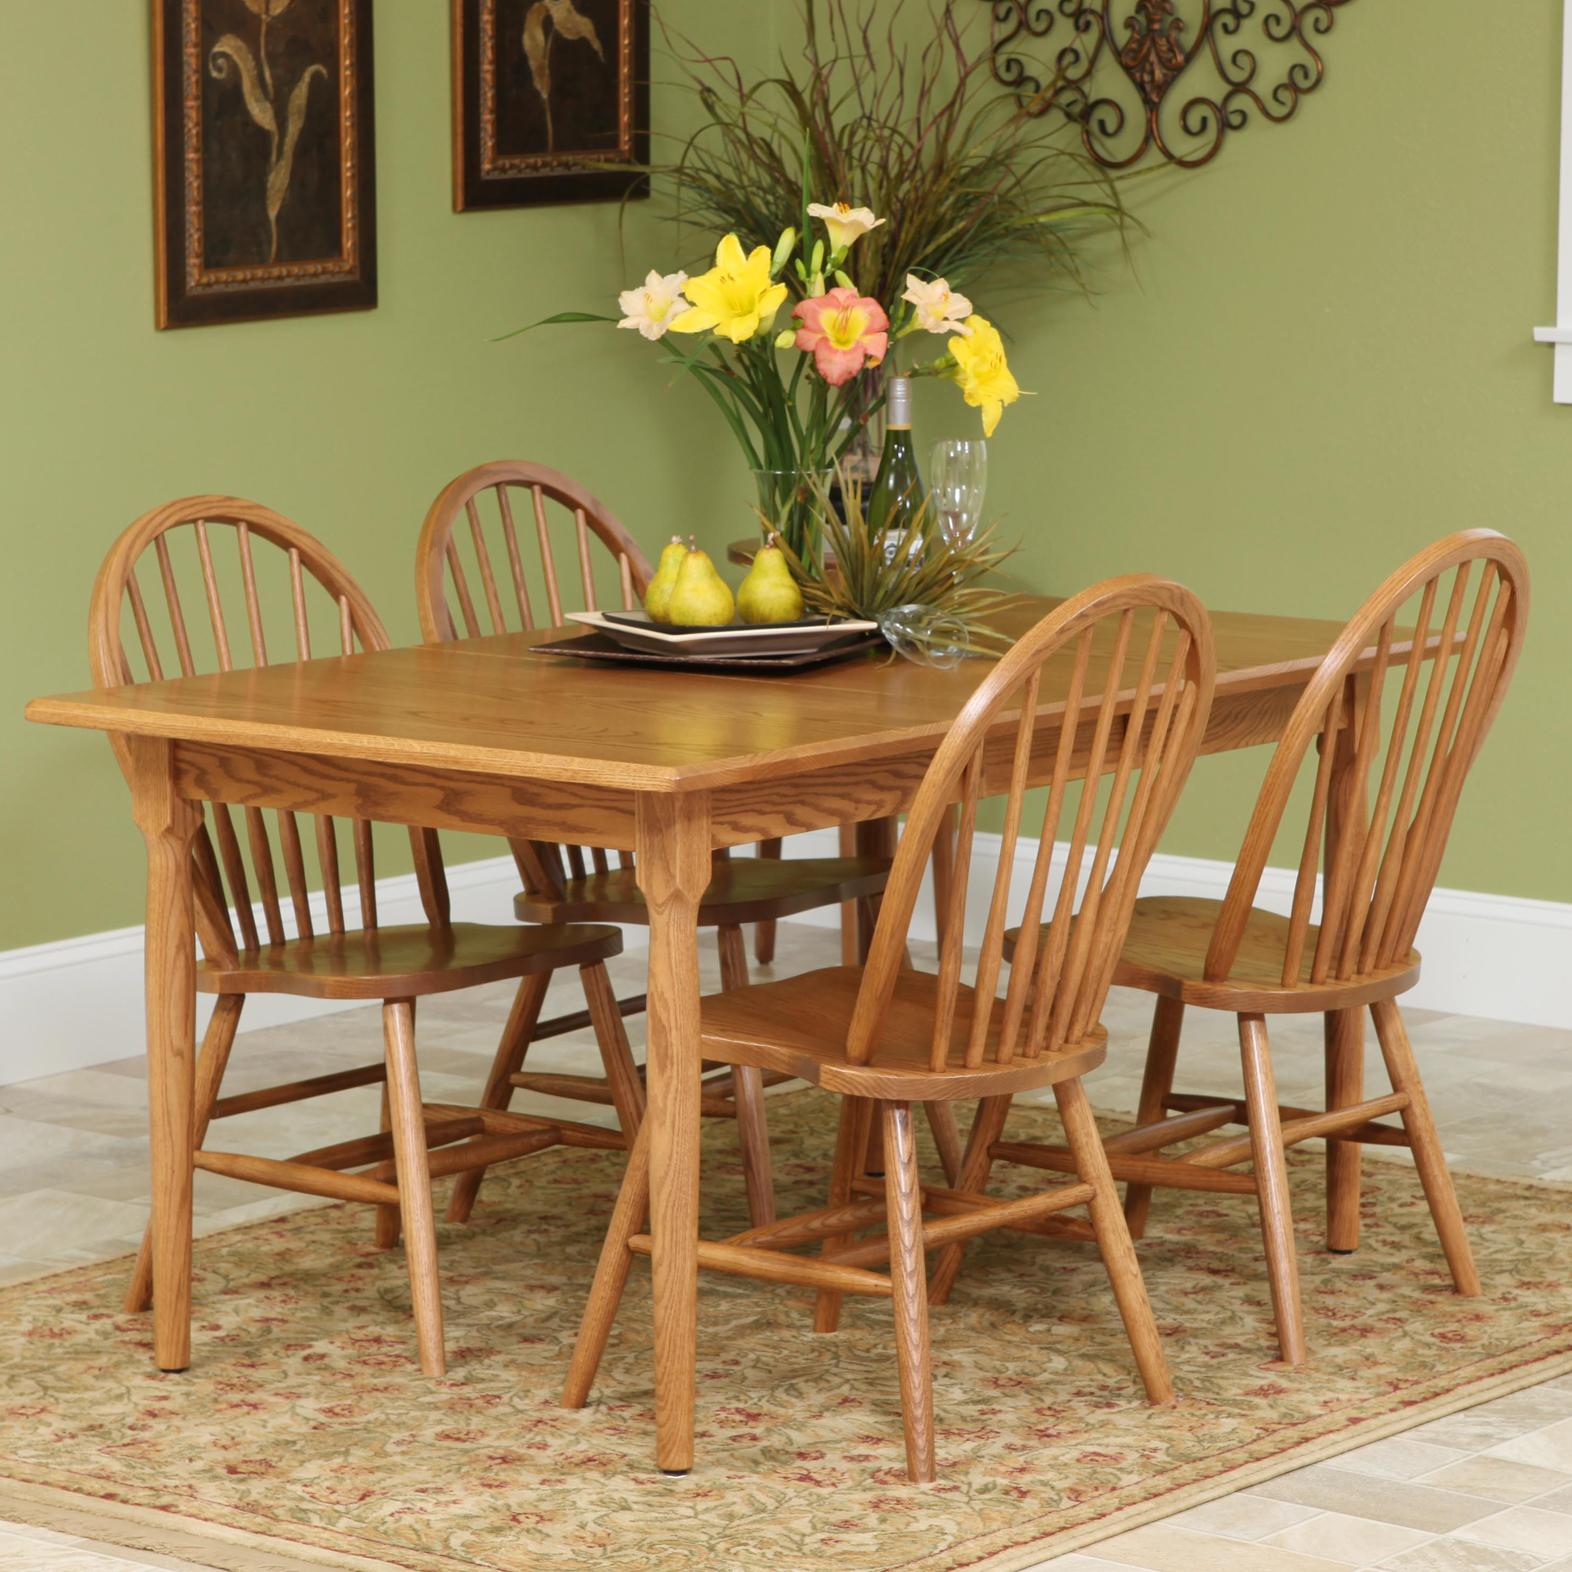 Americana 5 Piece Set by Trailway Amish Wood at Rooms and Rest